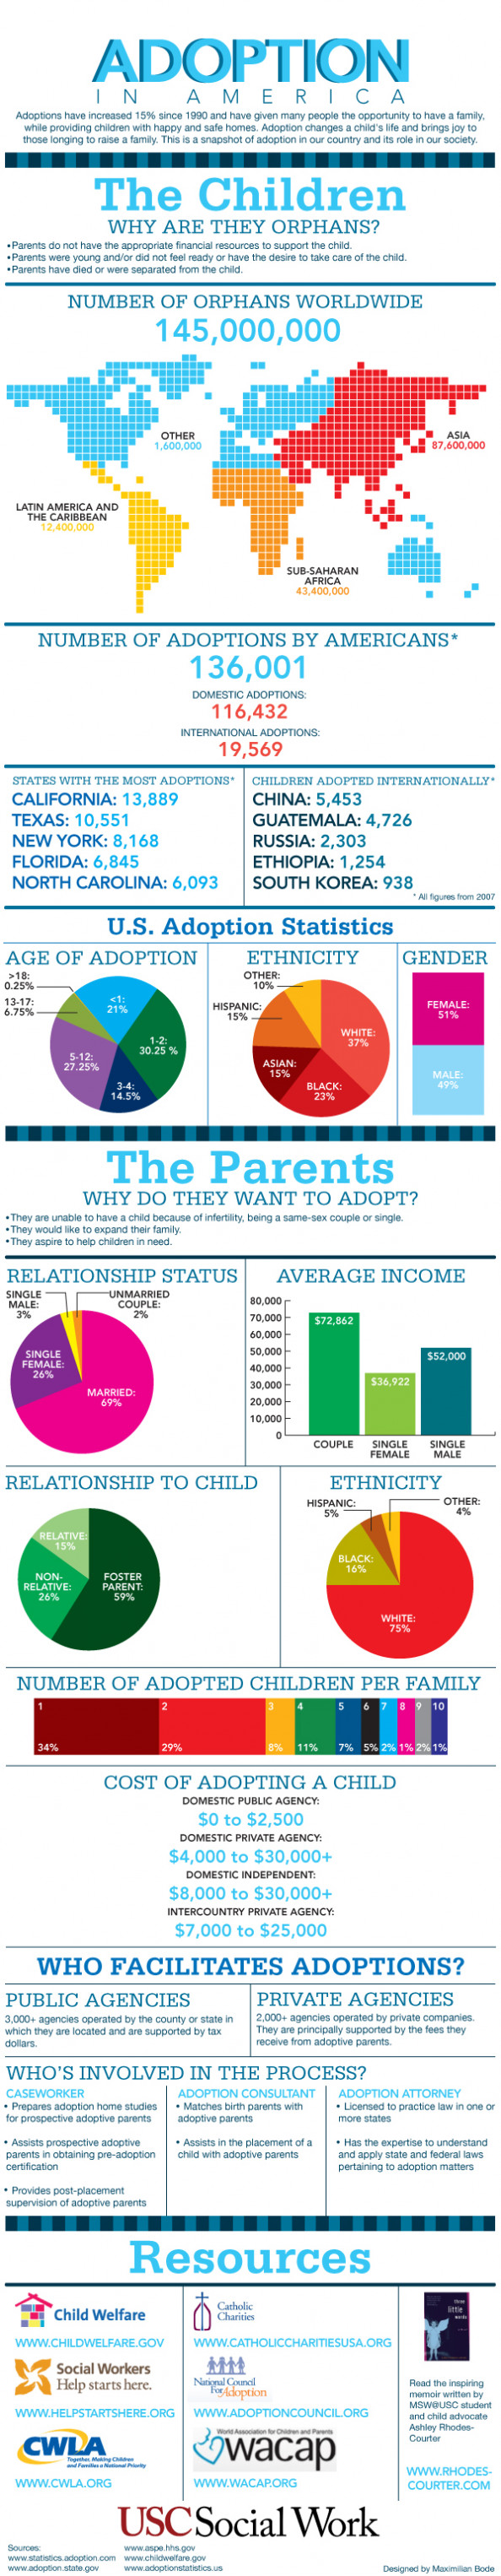 Adoption in America Infographic